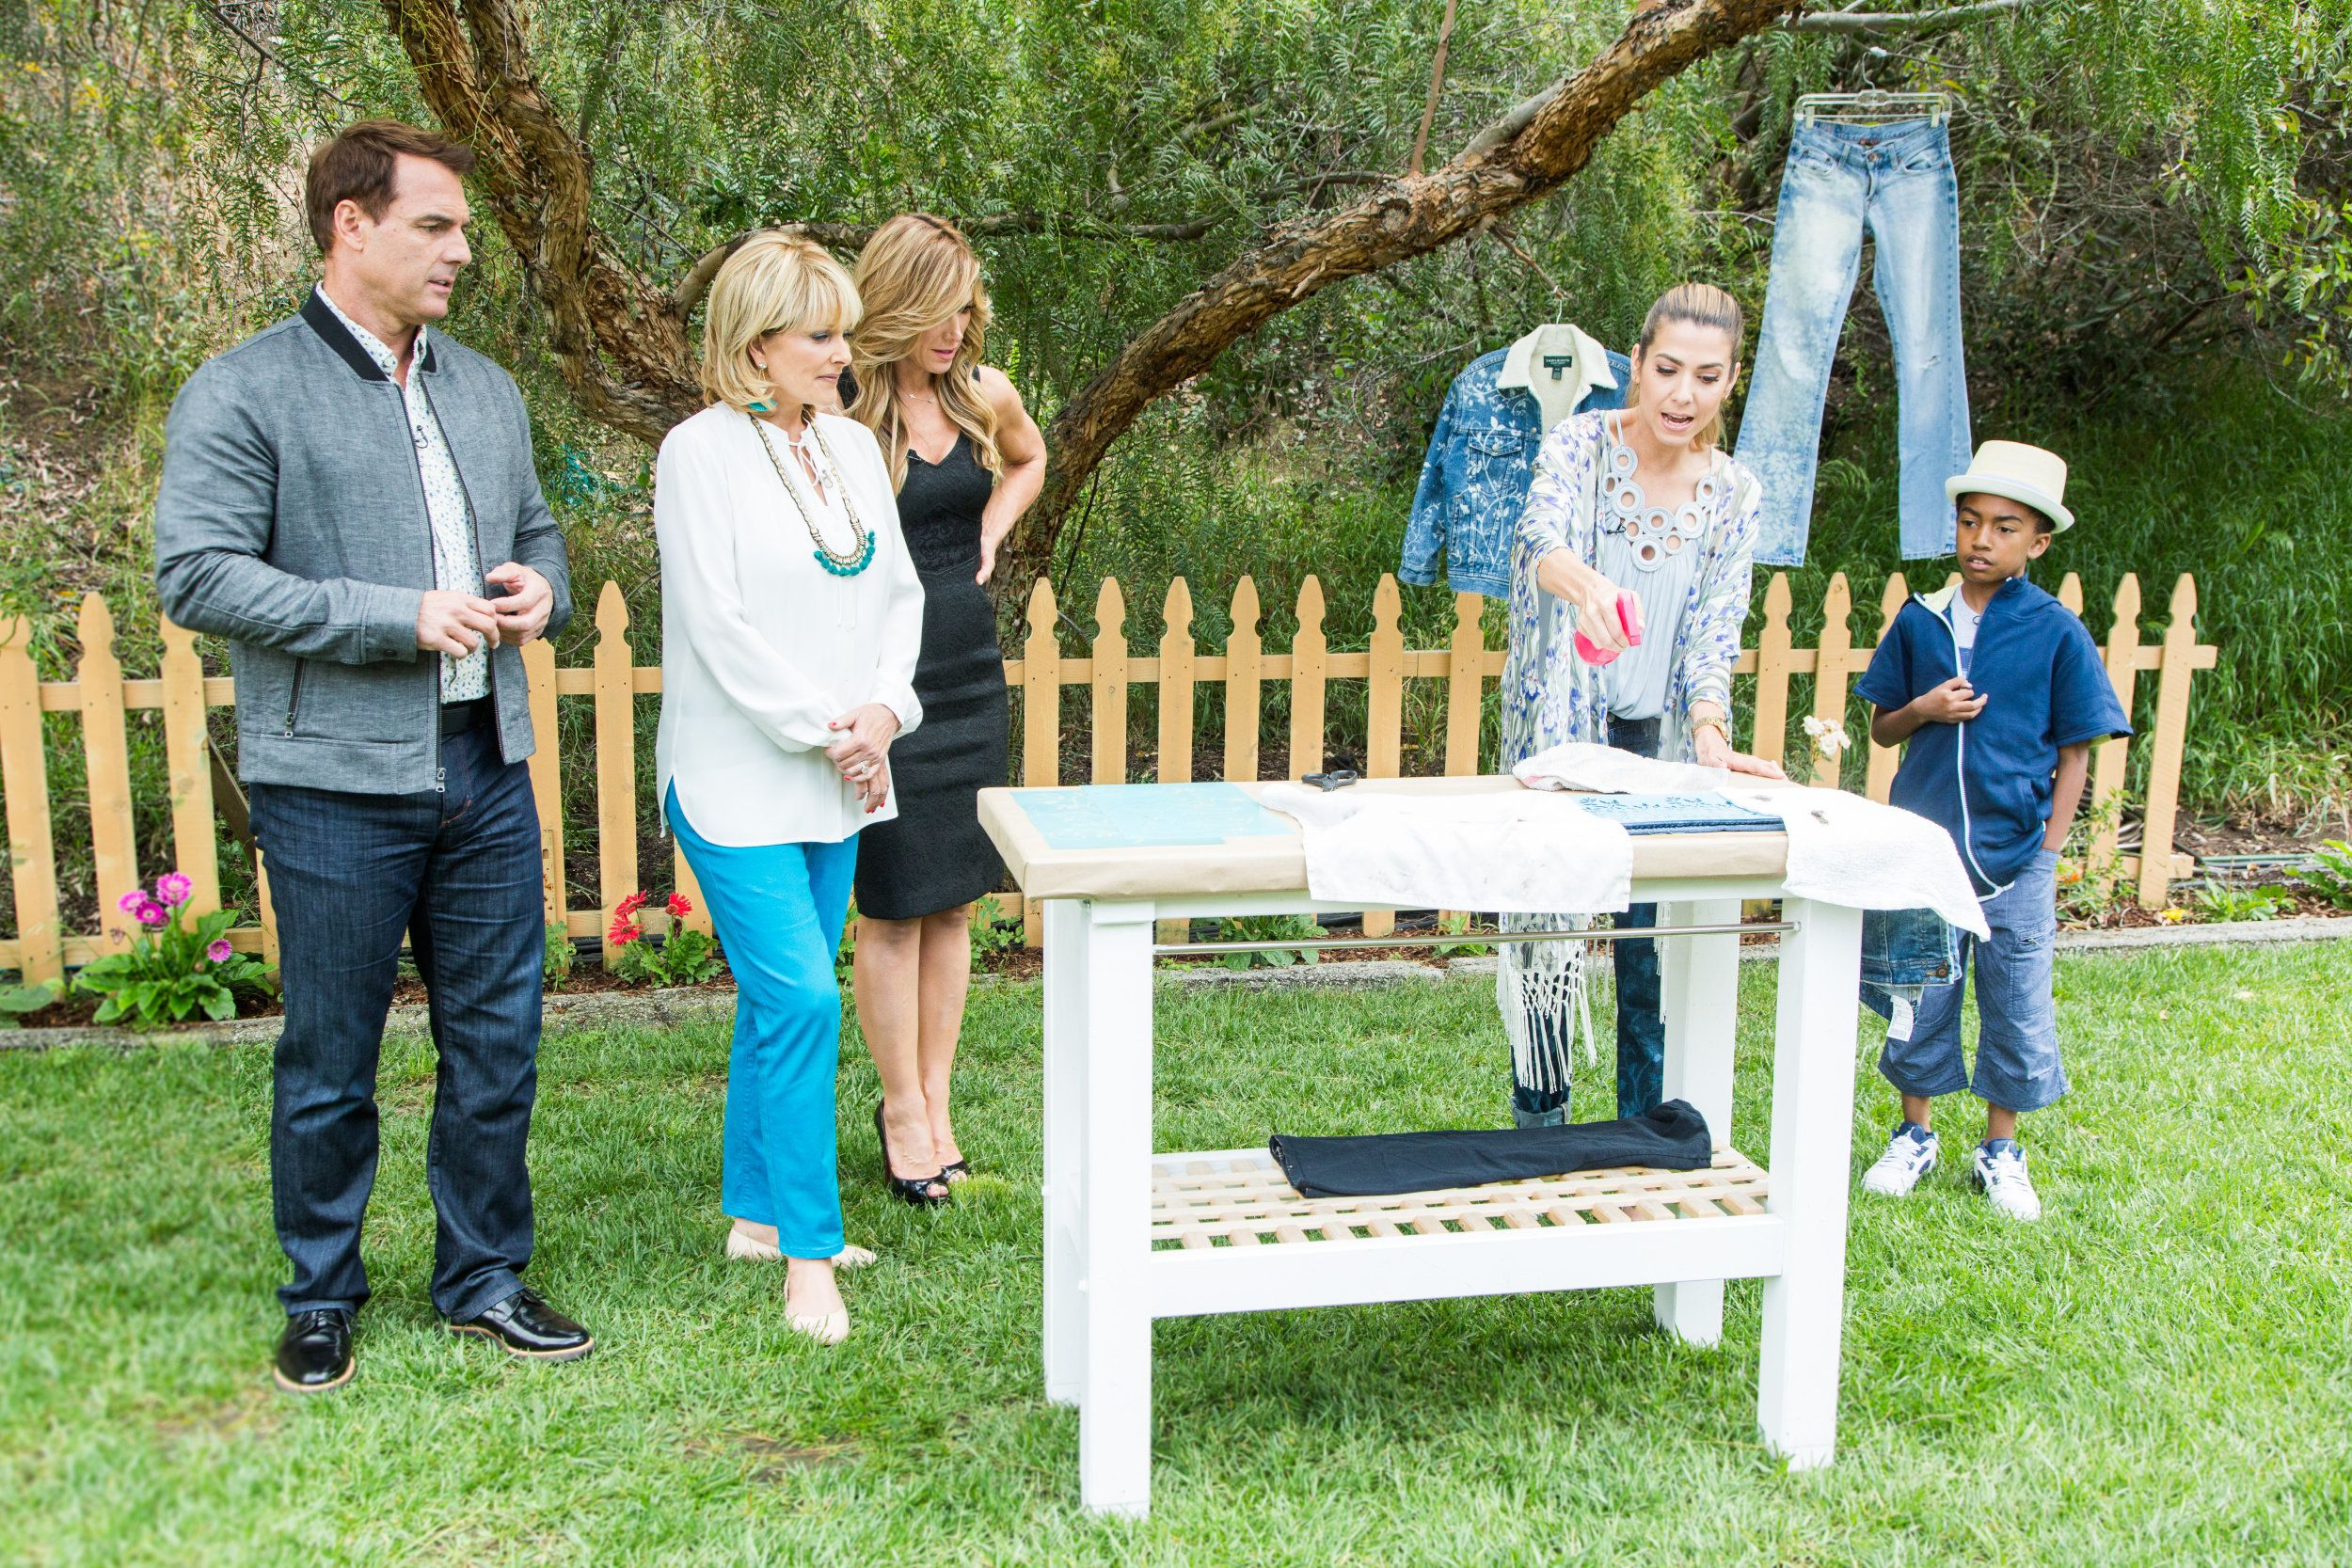 How To - Home & Family: DIY Stenciled Jeans | Hallmark Channel